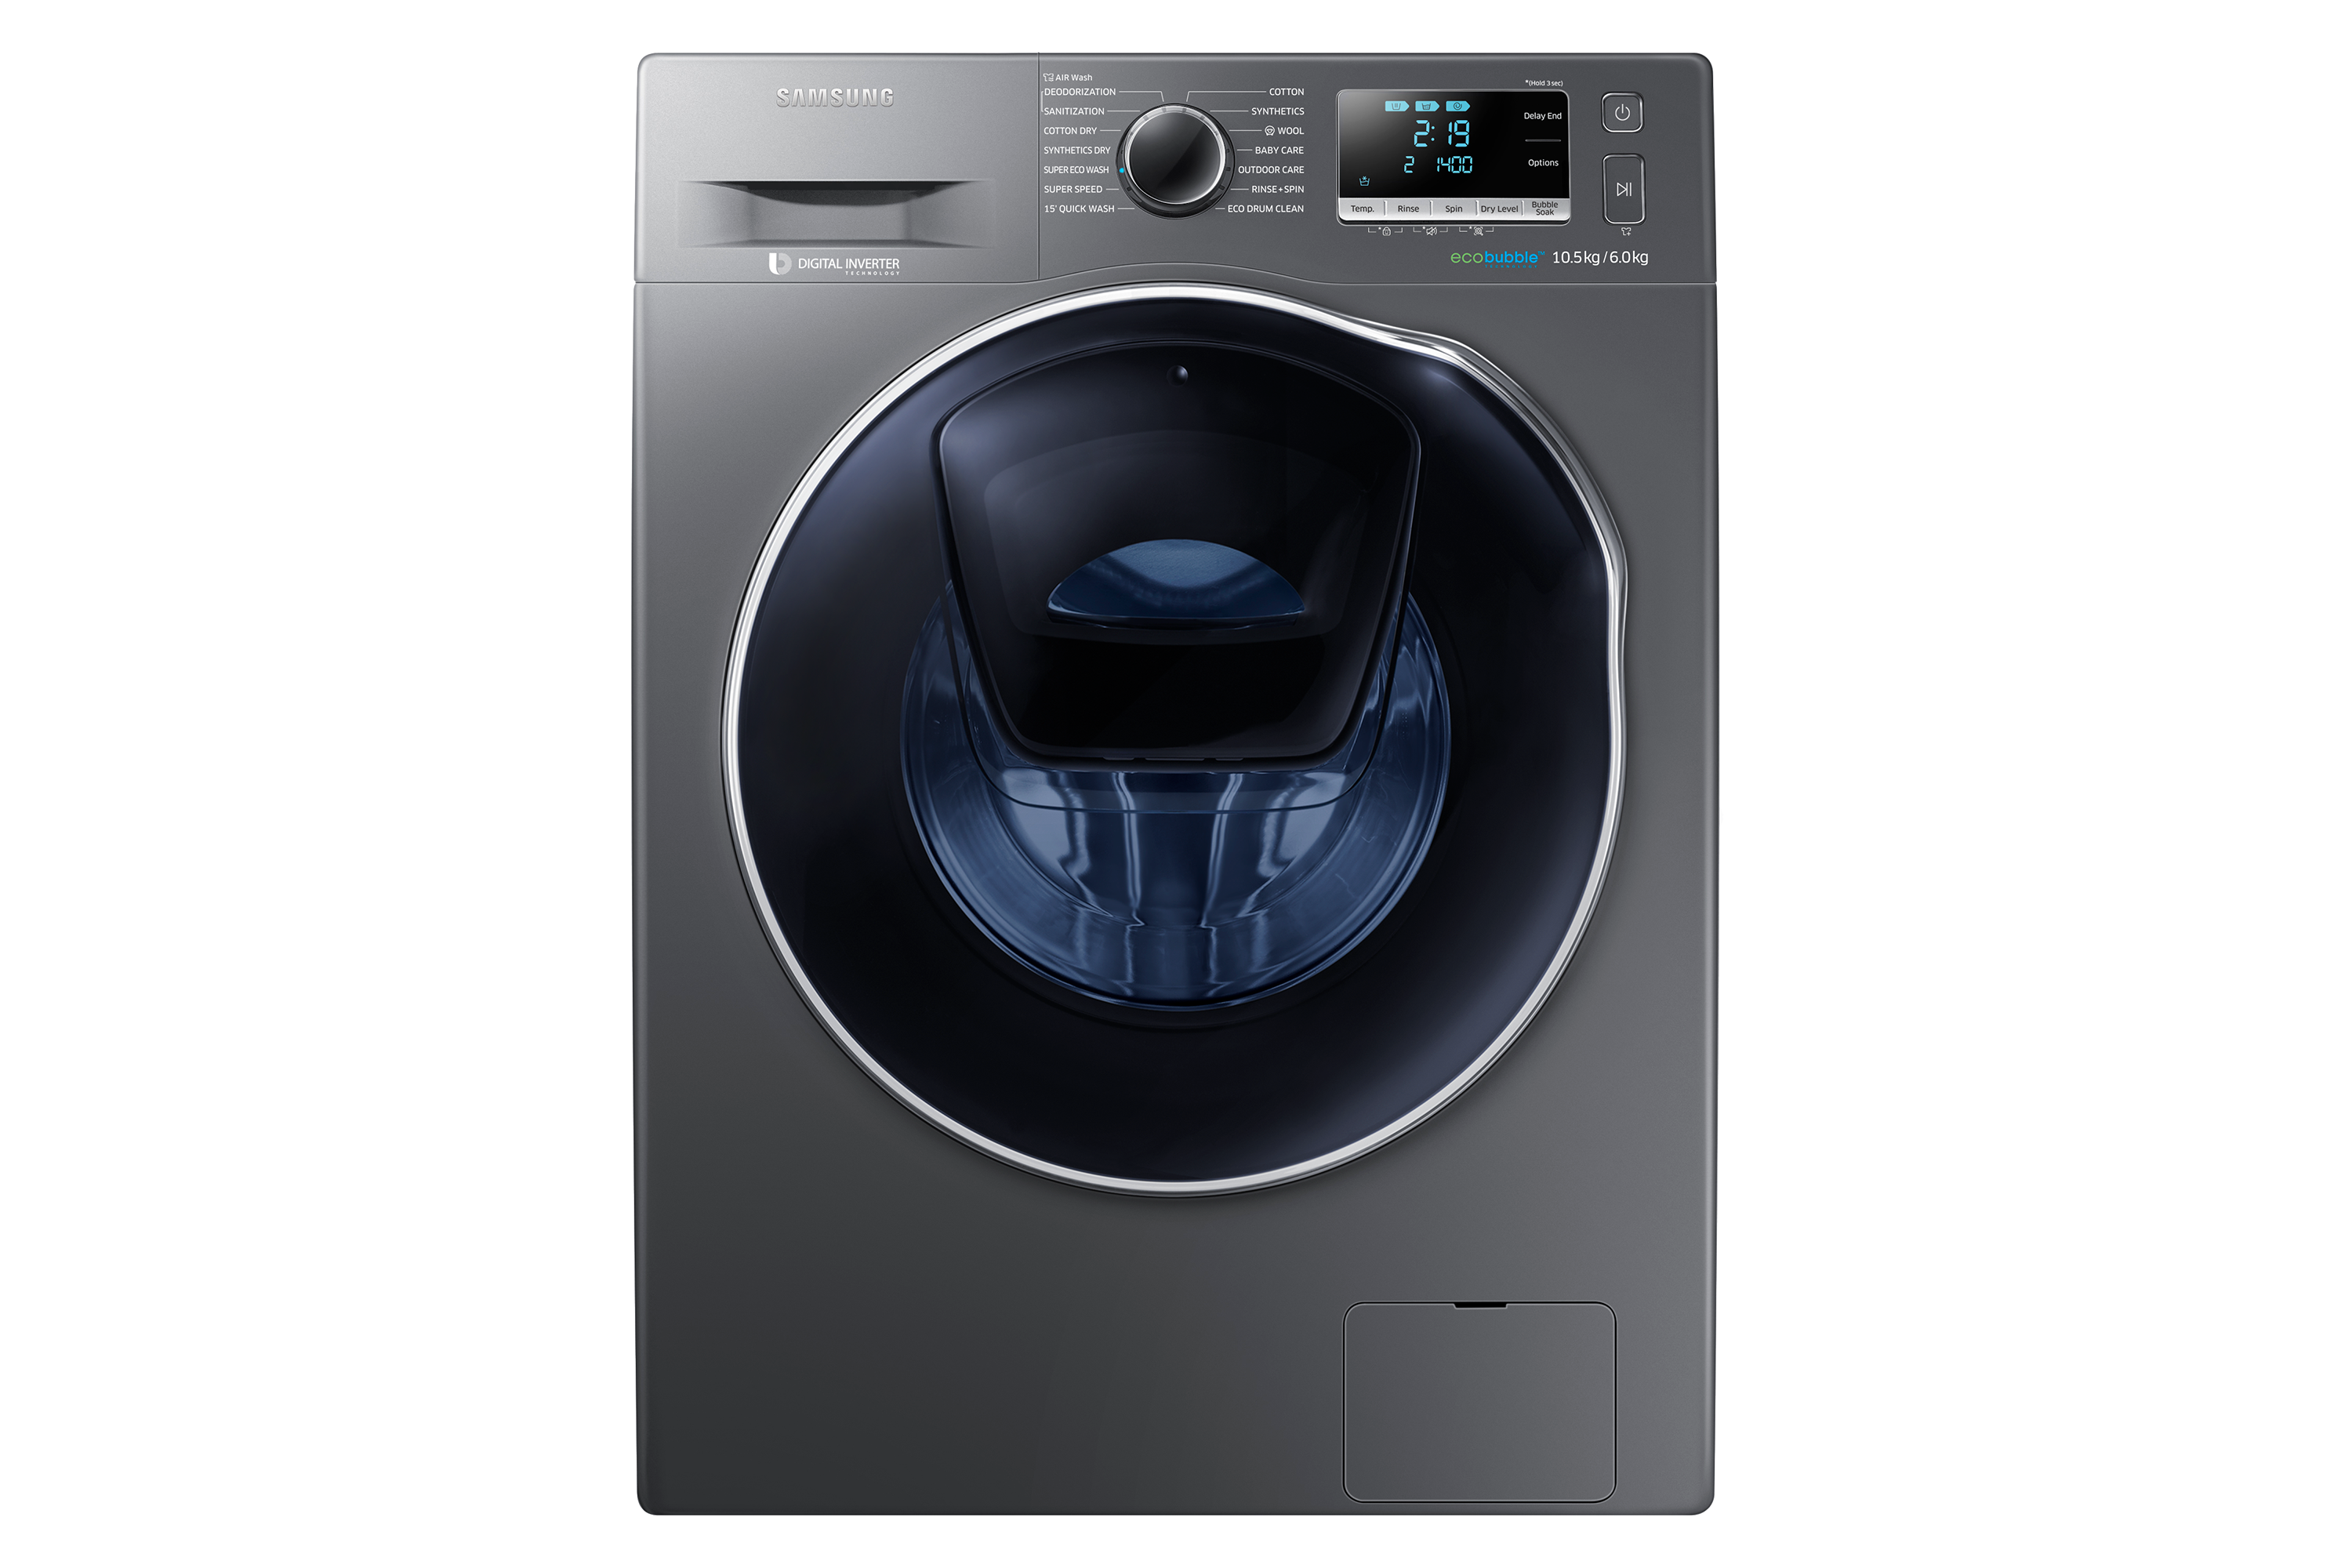 WD10K6410OX Front Load Washer - Dryer with Add Wash 10.5Kg